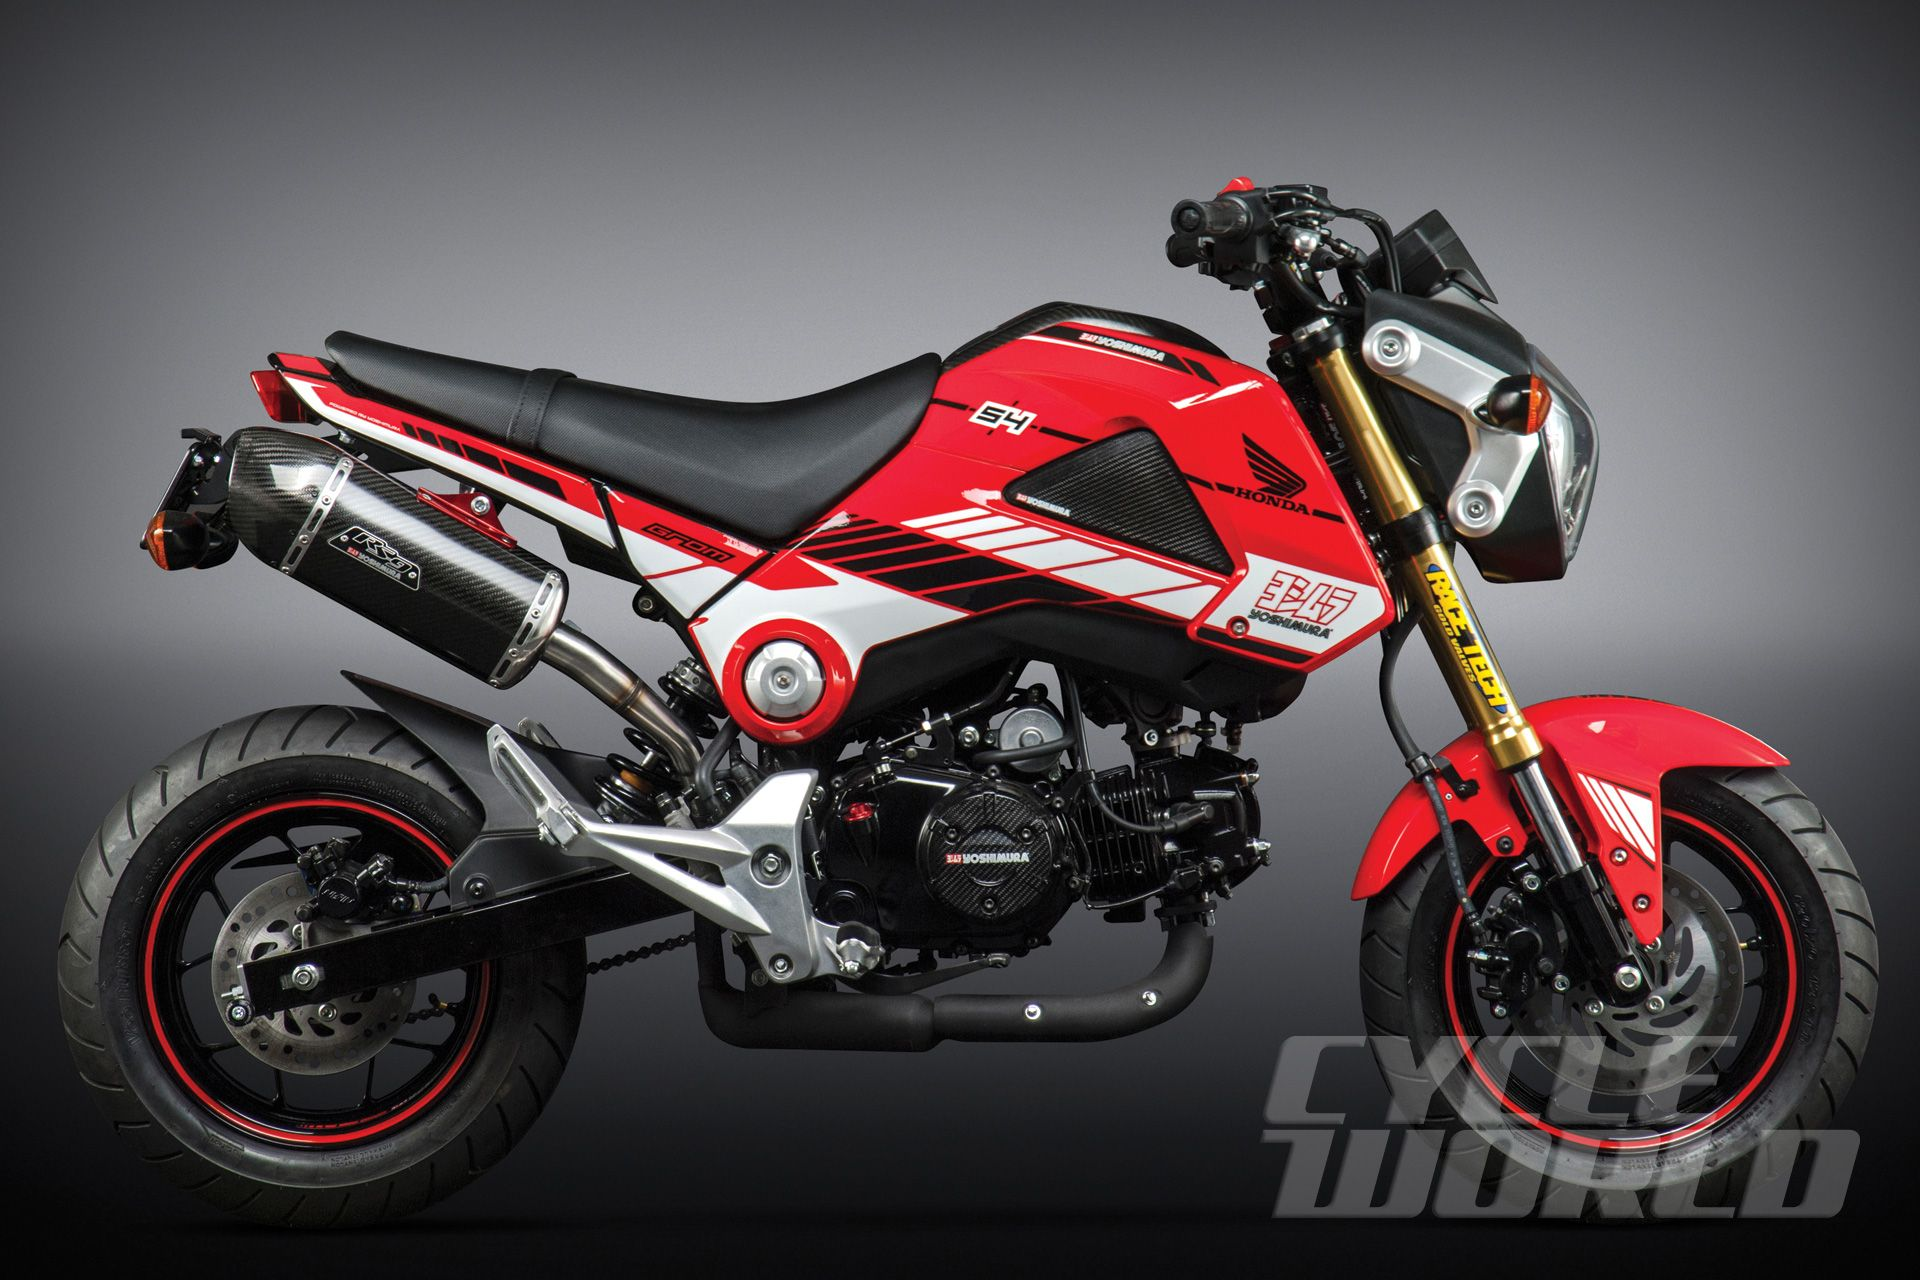 2014 honda grom with yoshimura exhaust system. | down shift